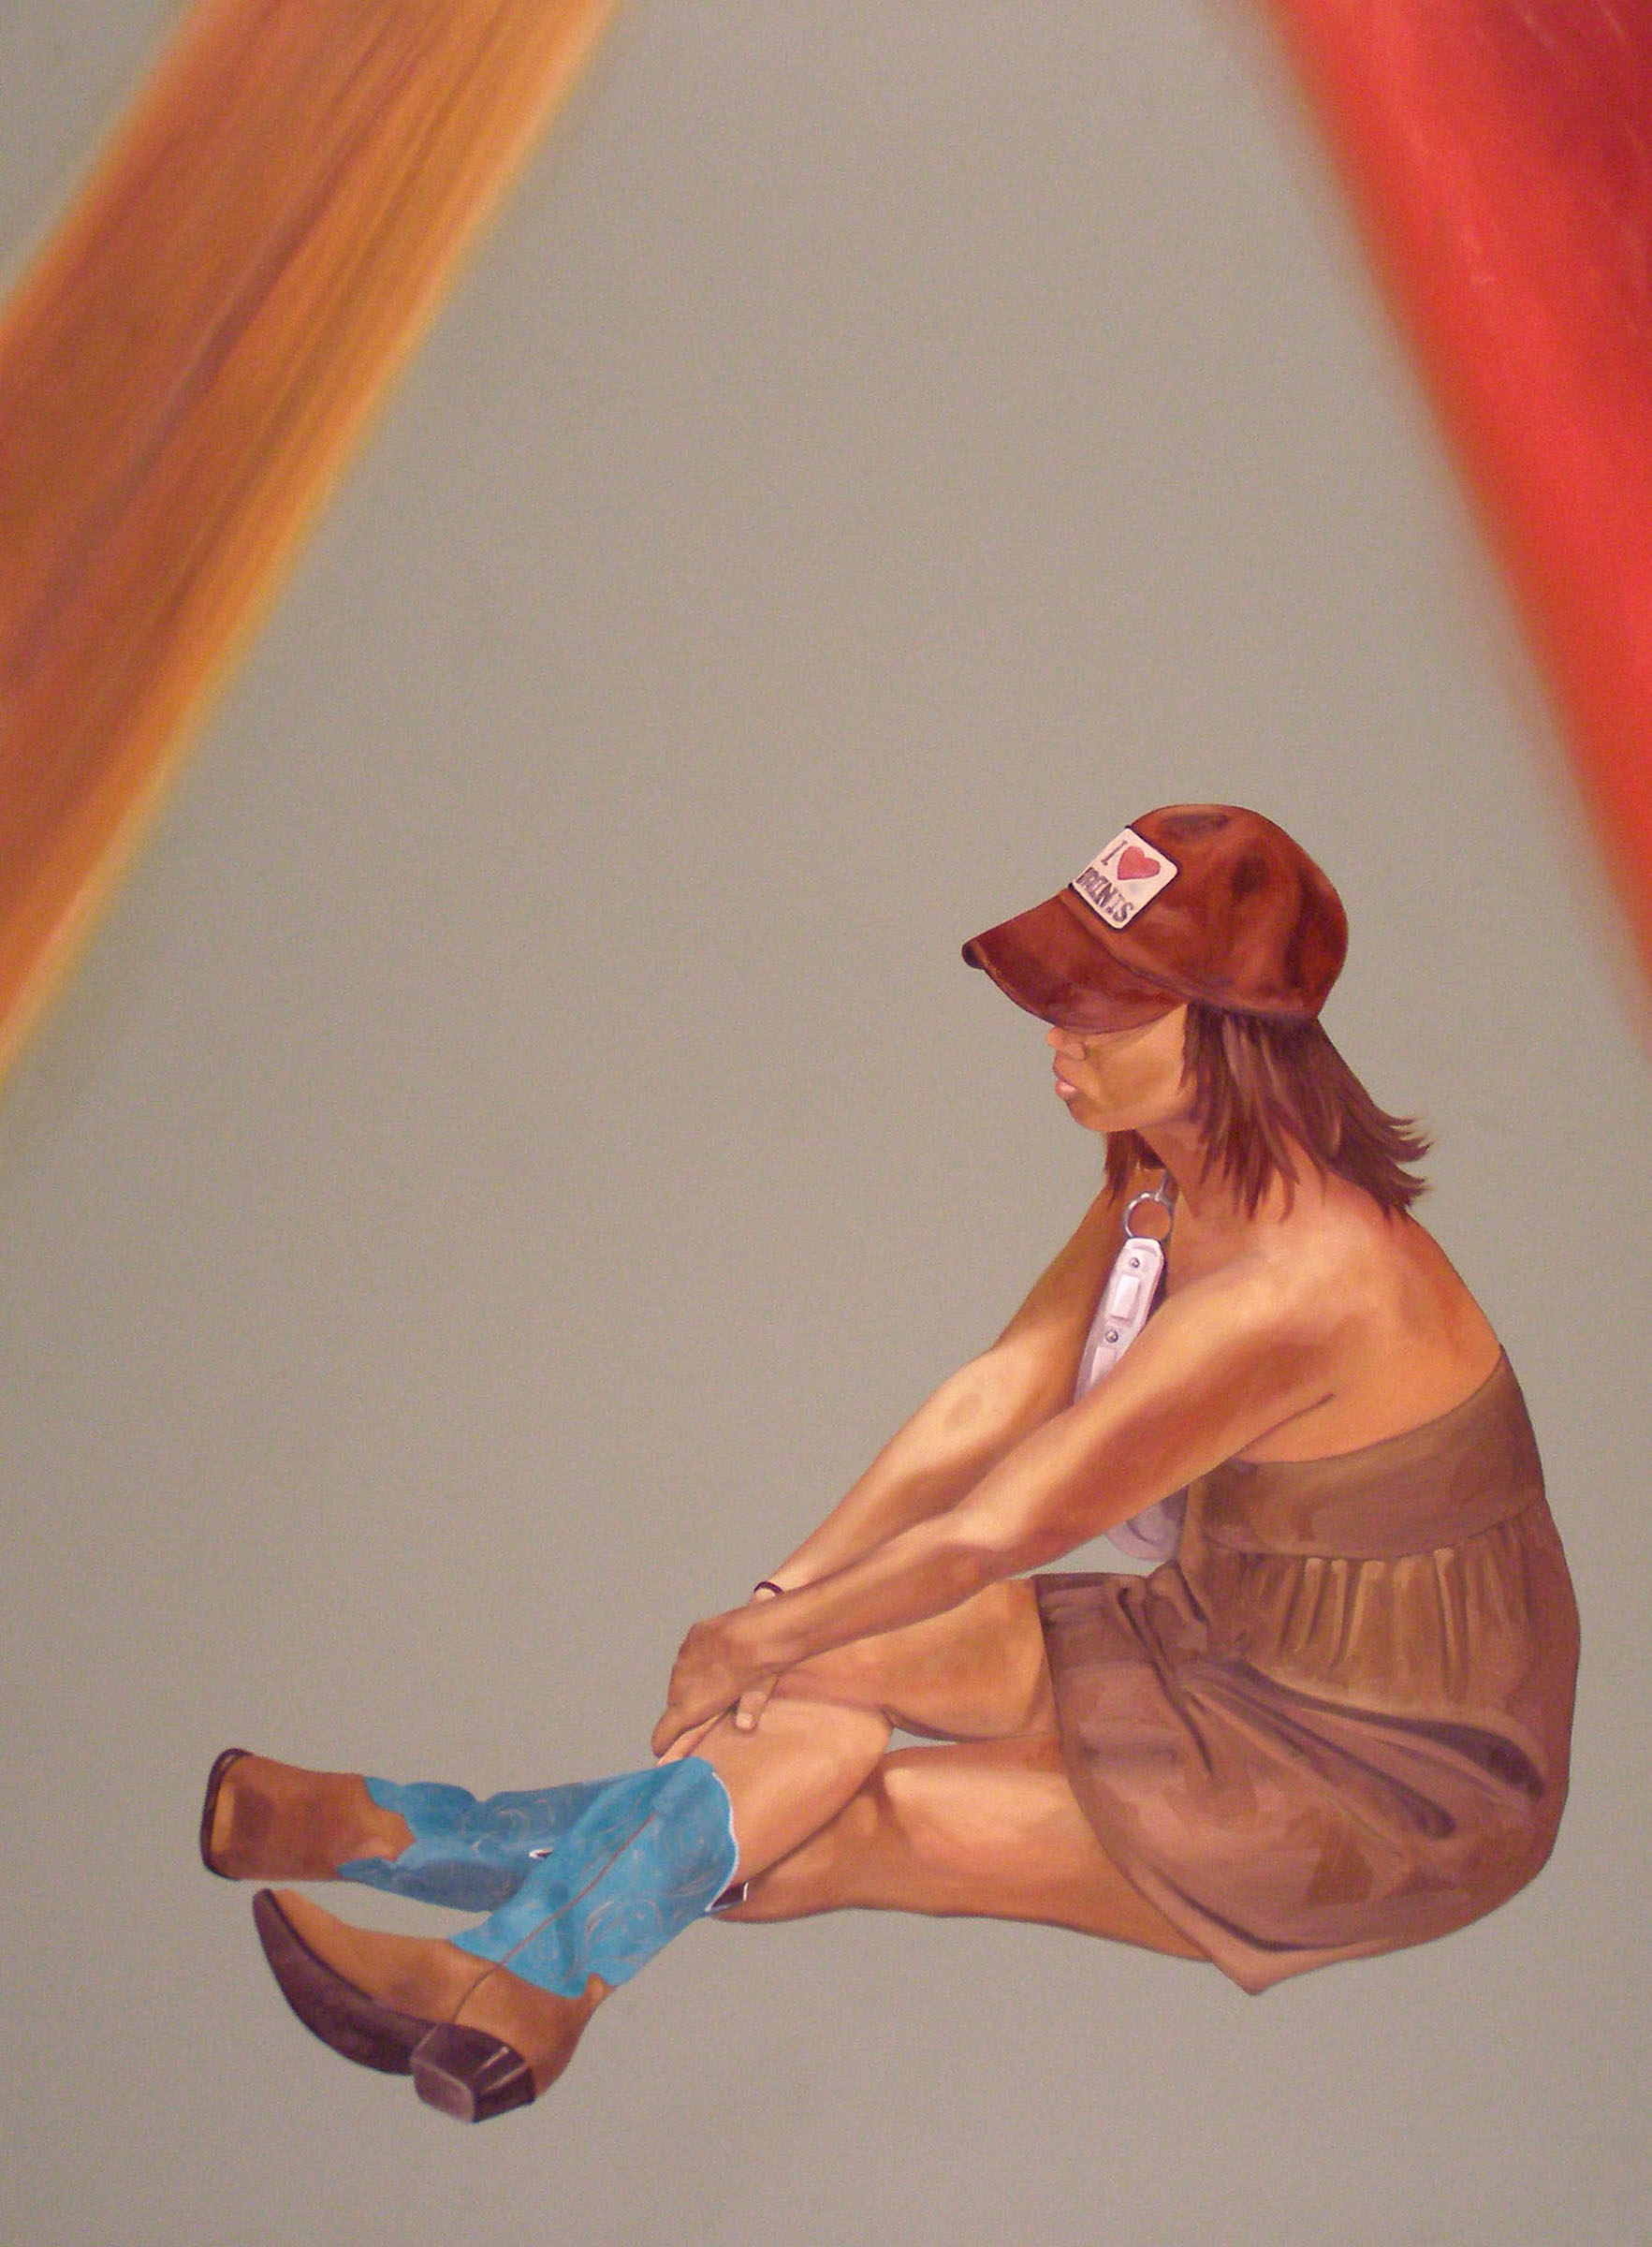 """Alone Together: September 16th, 8:10pm , 46""""x 34"""", oil on laminate, 2007"""